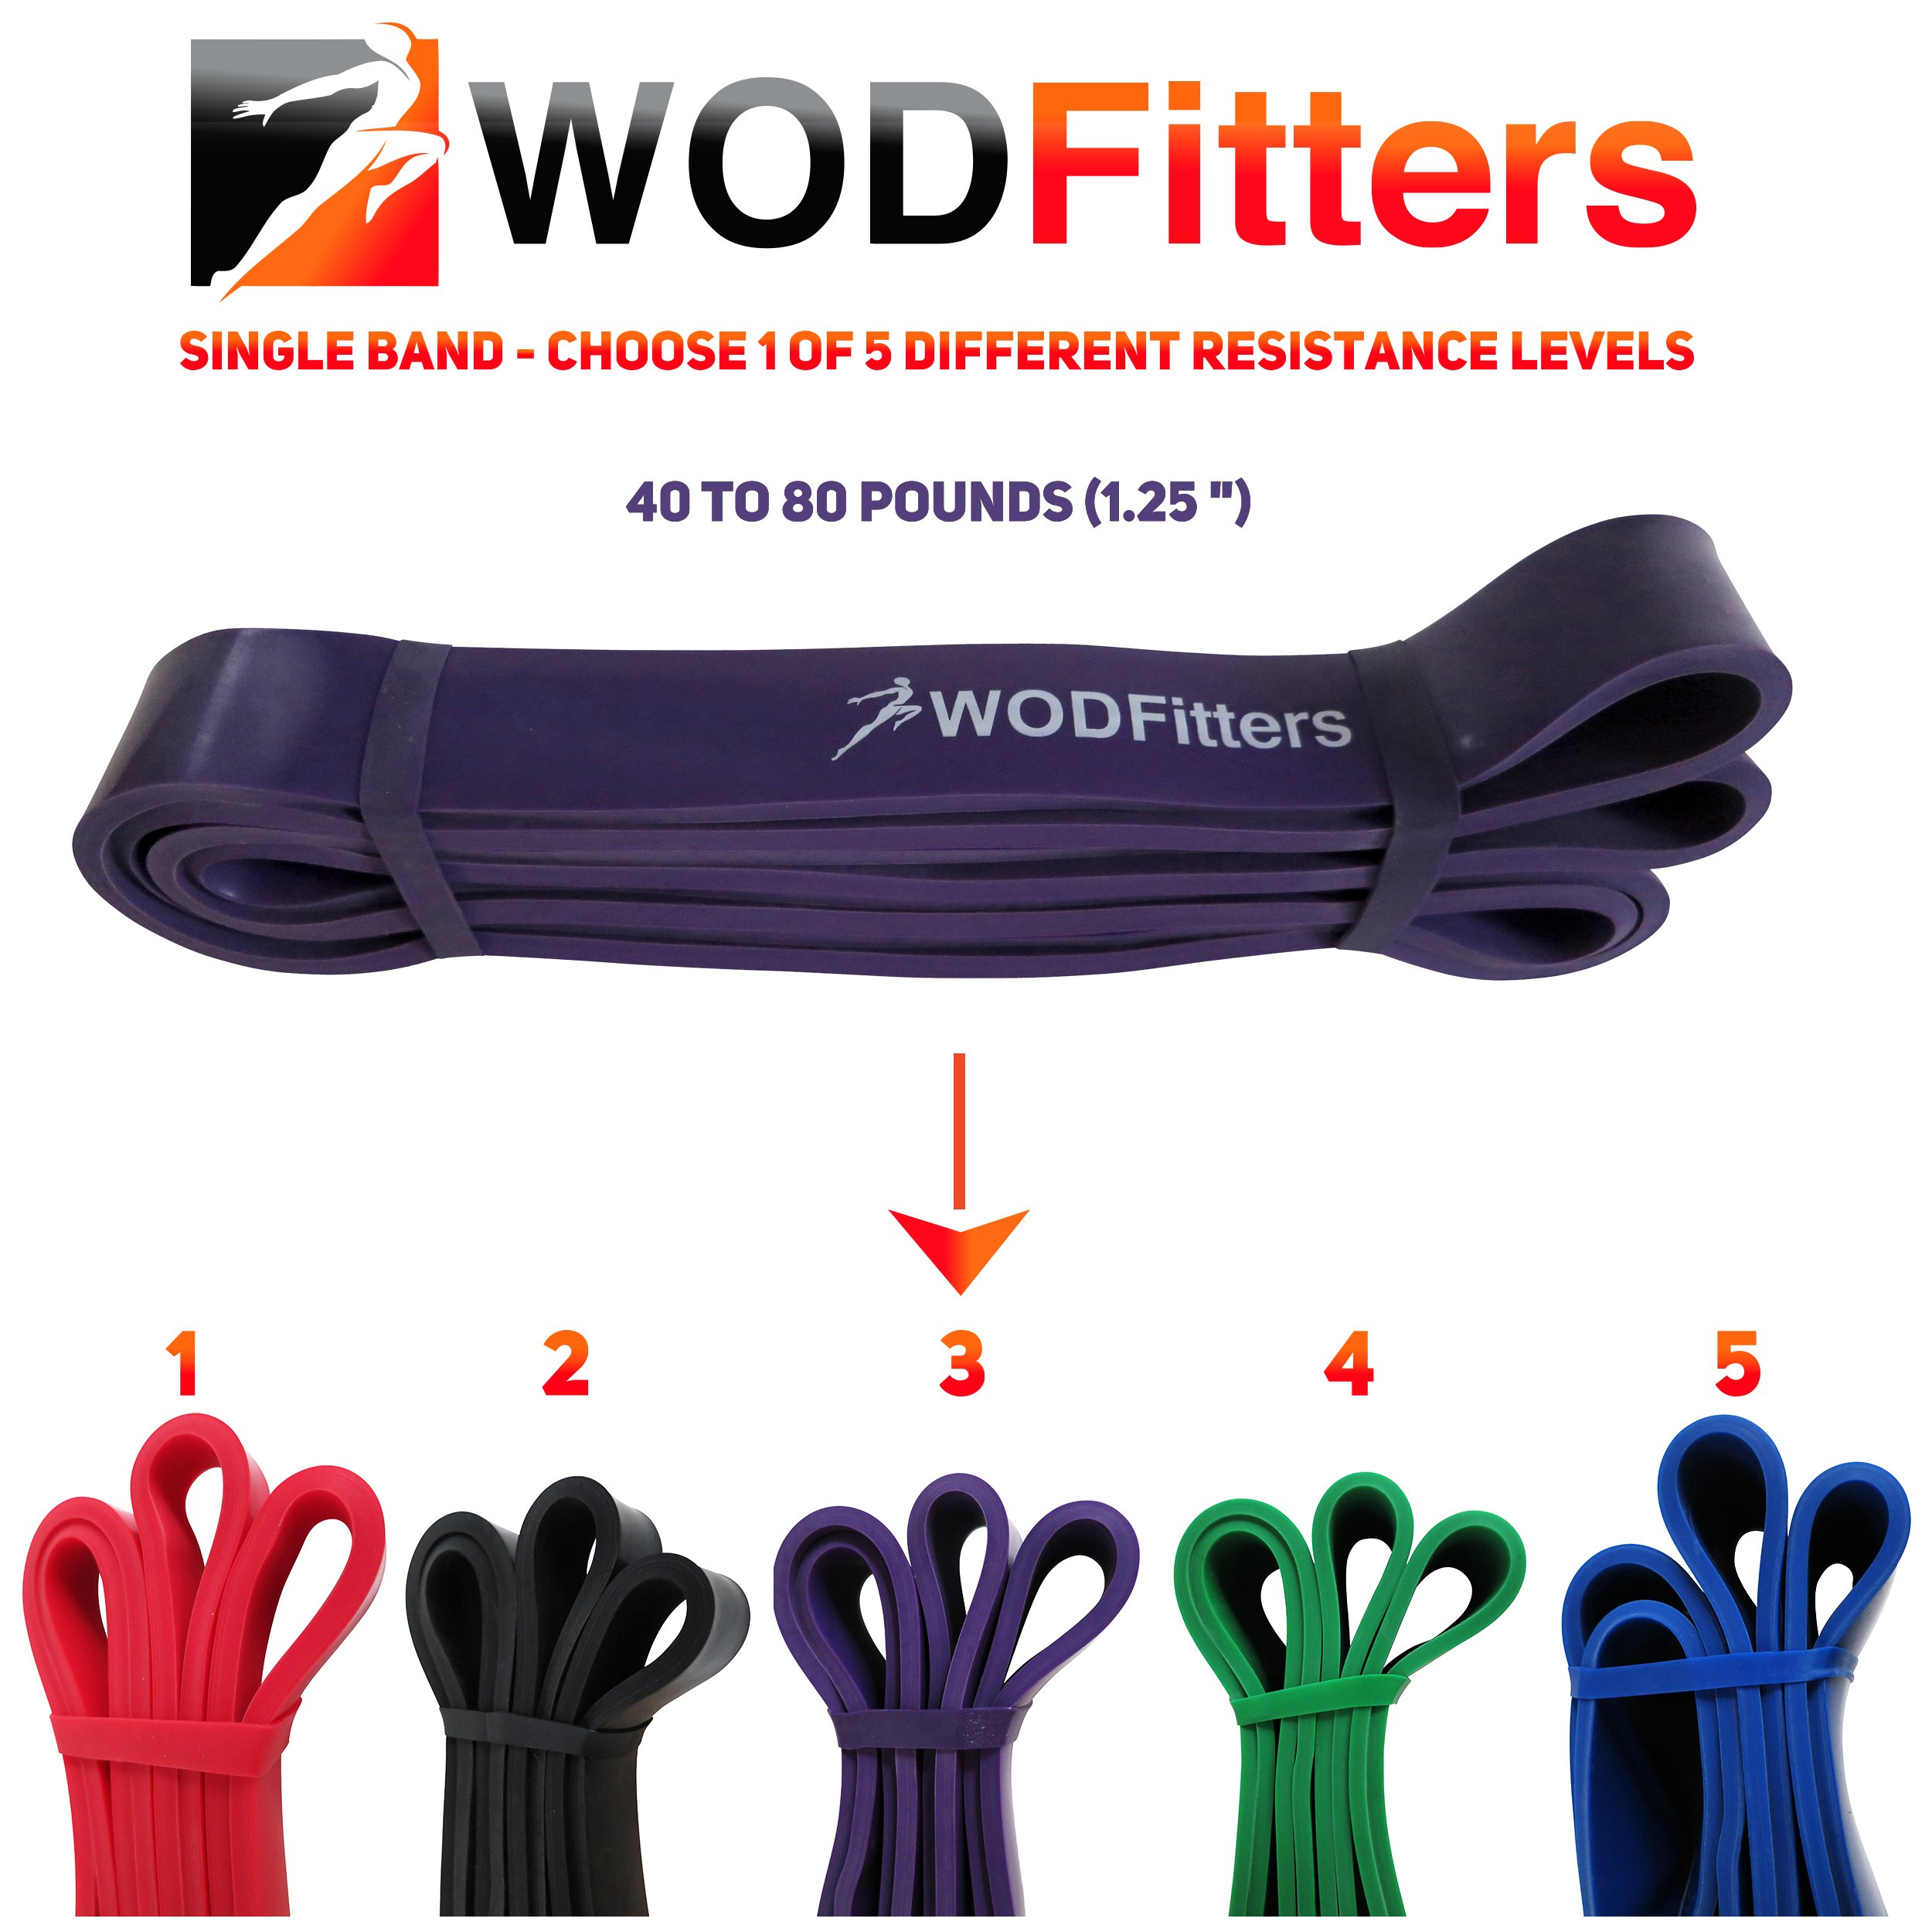 WODFitters Pull Up Band (Purple) Assisted Pull-up Resistance Band - Pull Up Assist Band Ideal for Assisted Pull Ups, Chin Ups or Power Lifting by WODFitters (Image #4)